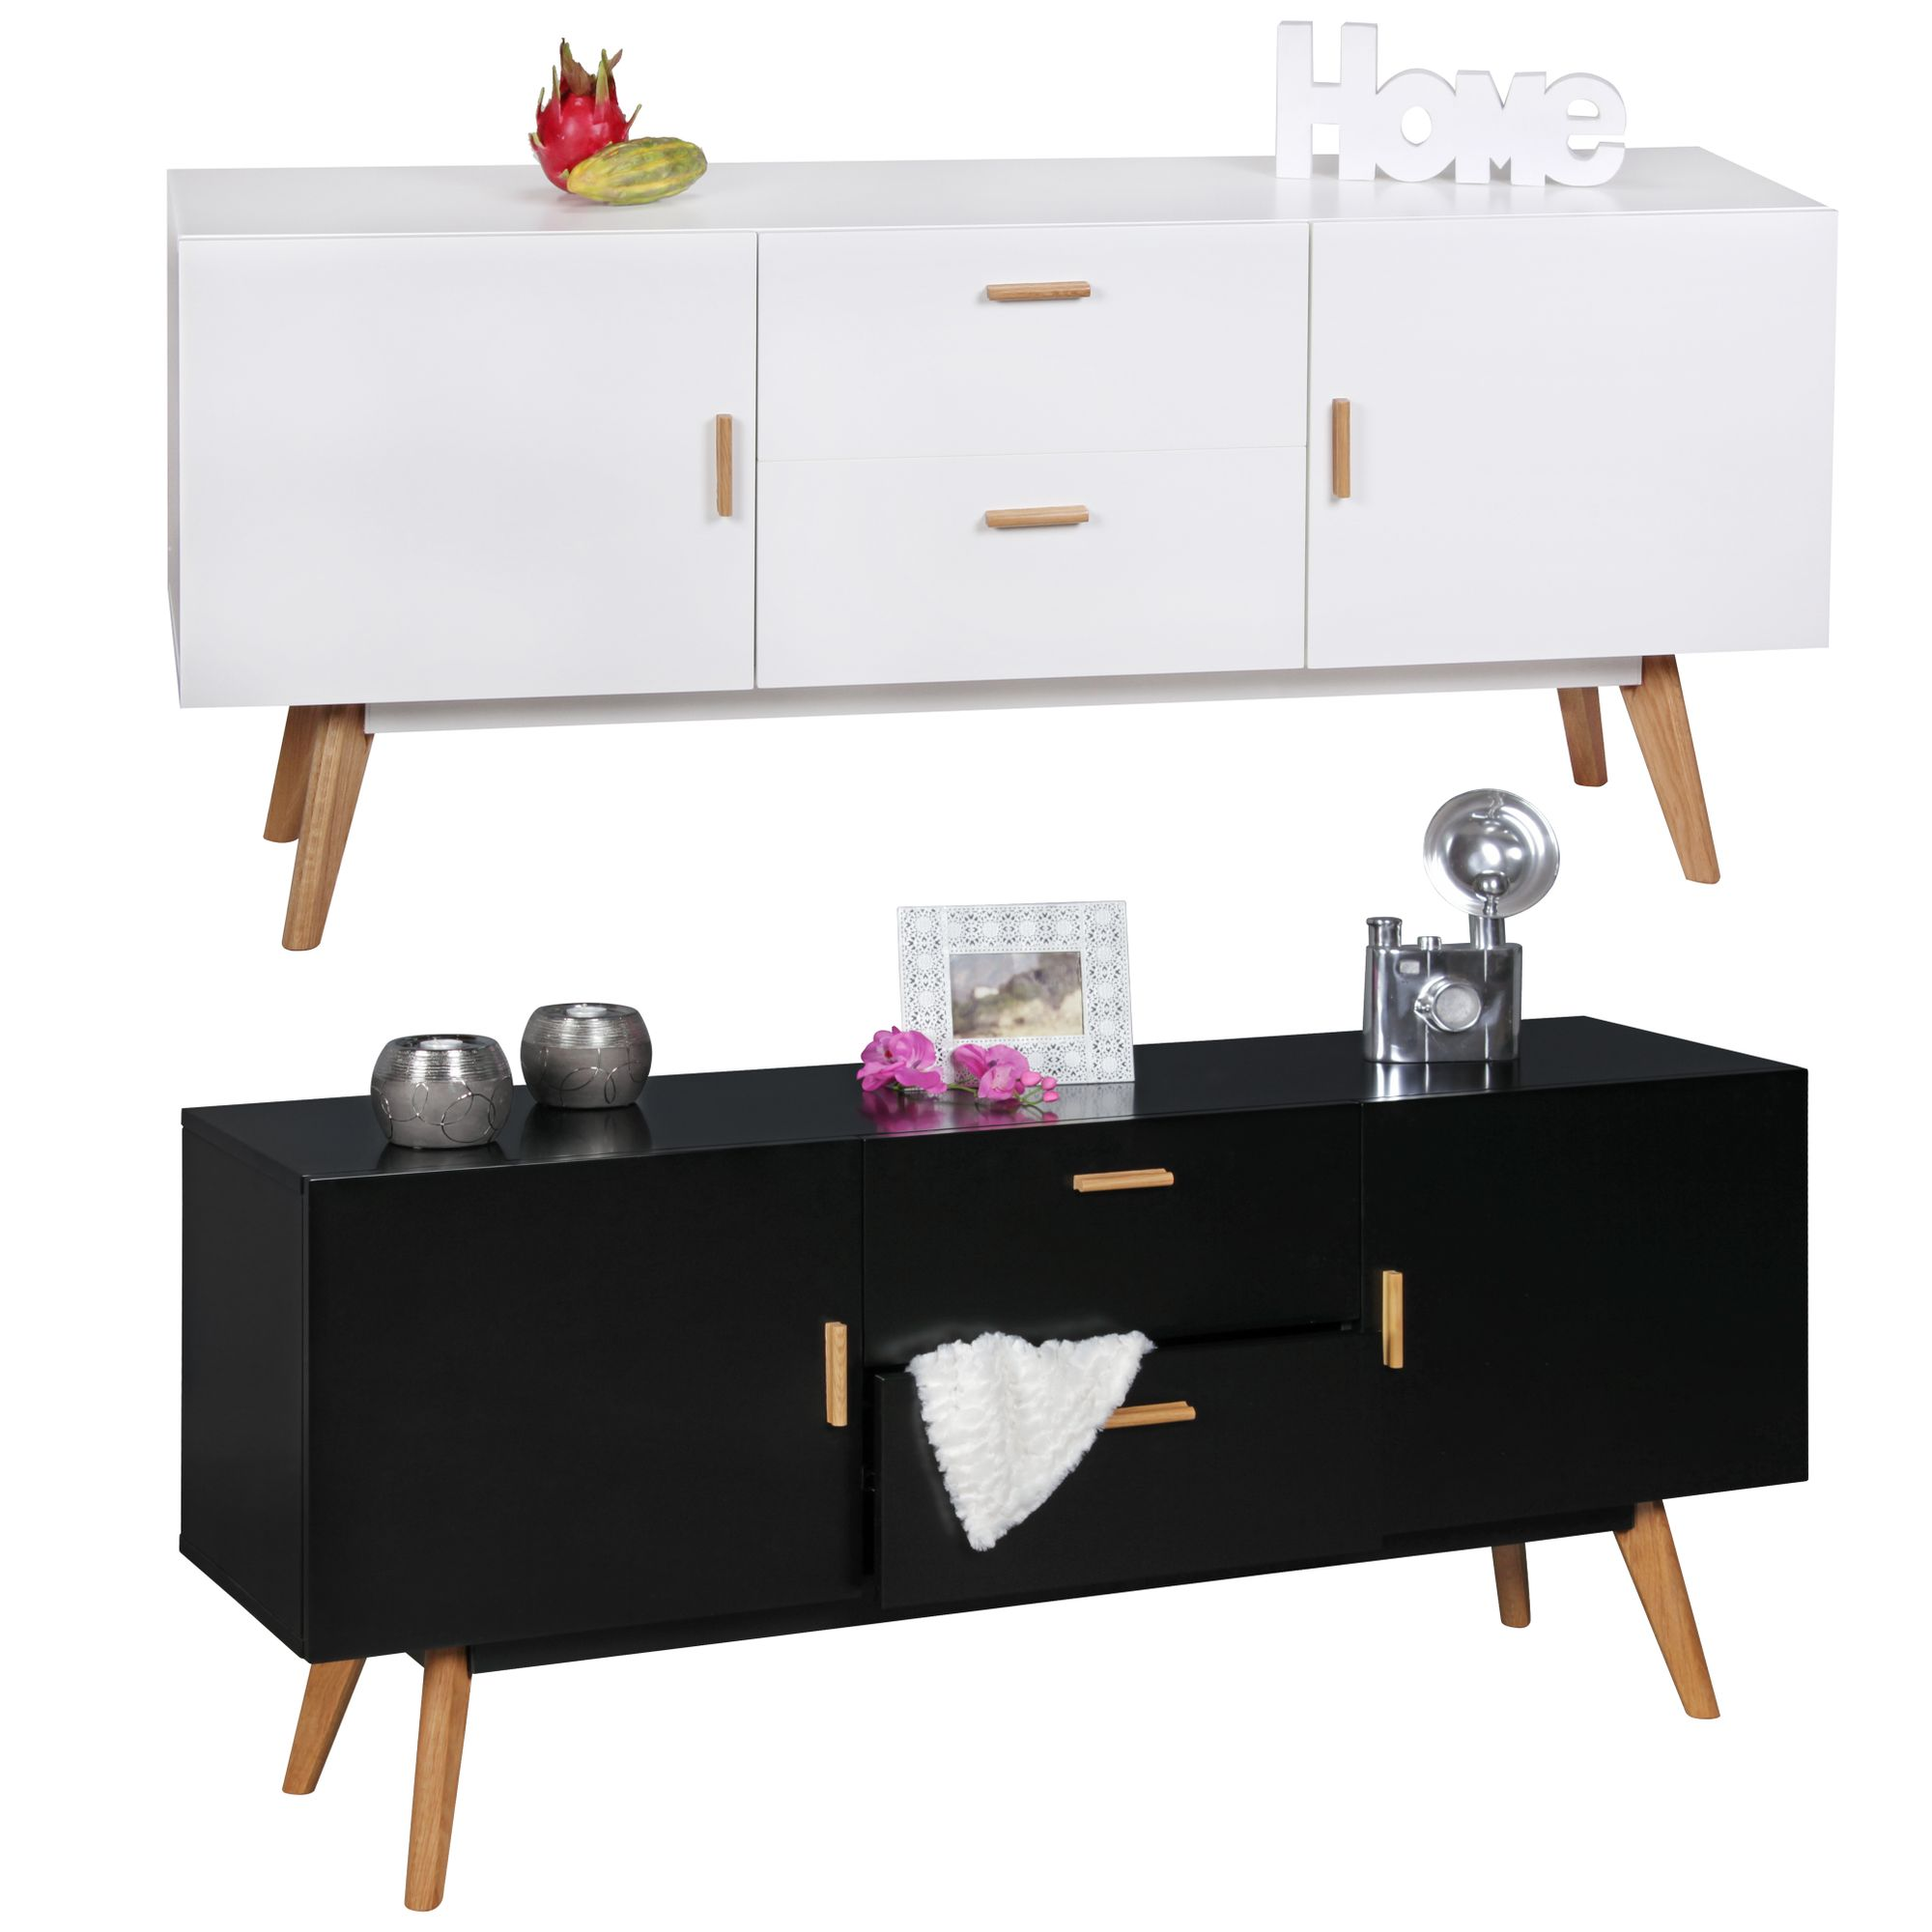 Retro Sideboard Scanio Holz Turen Schubladen Highboard Kommode